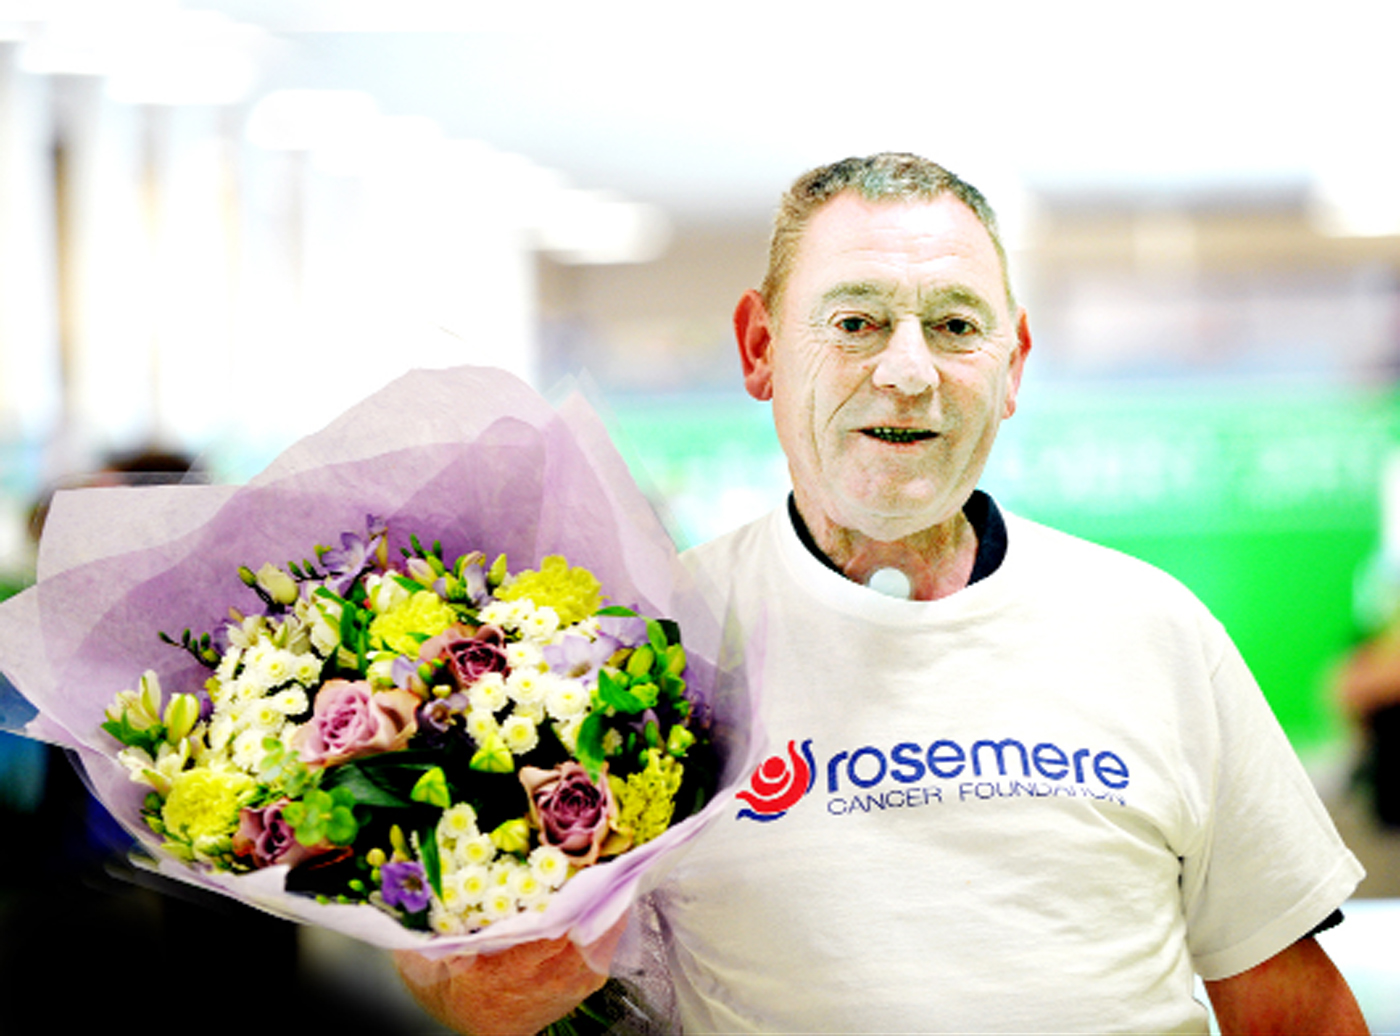 Rosemere volunteer Geoff Whittaker at Asda, Colne